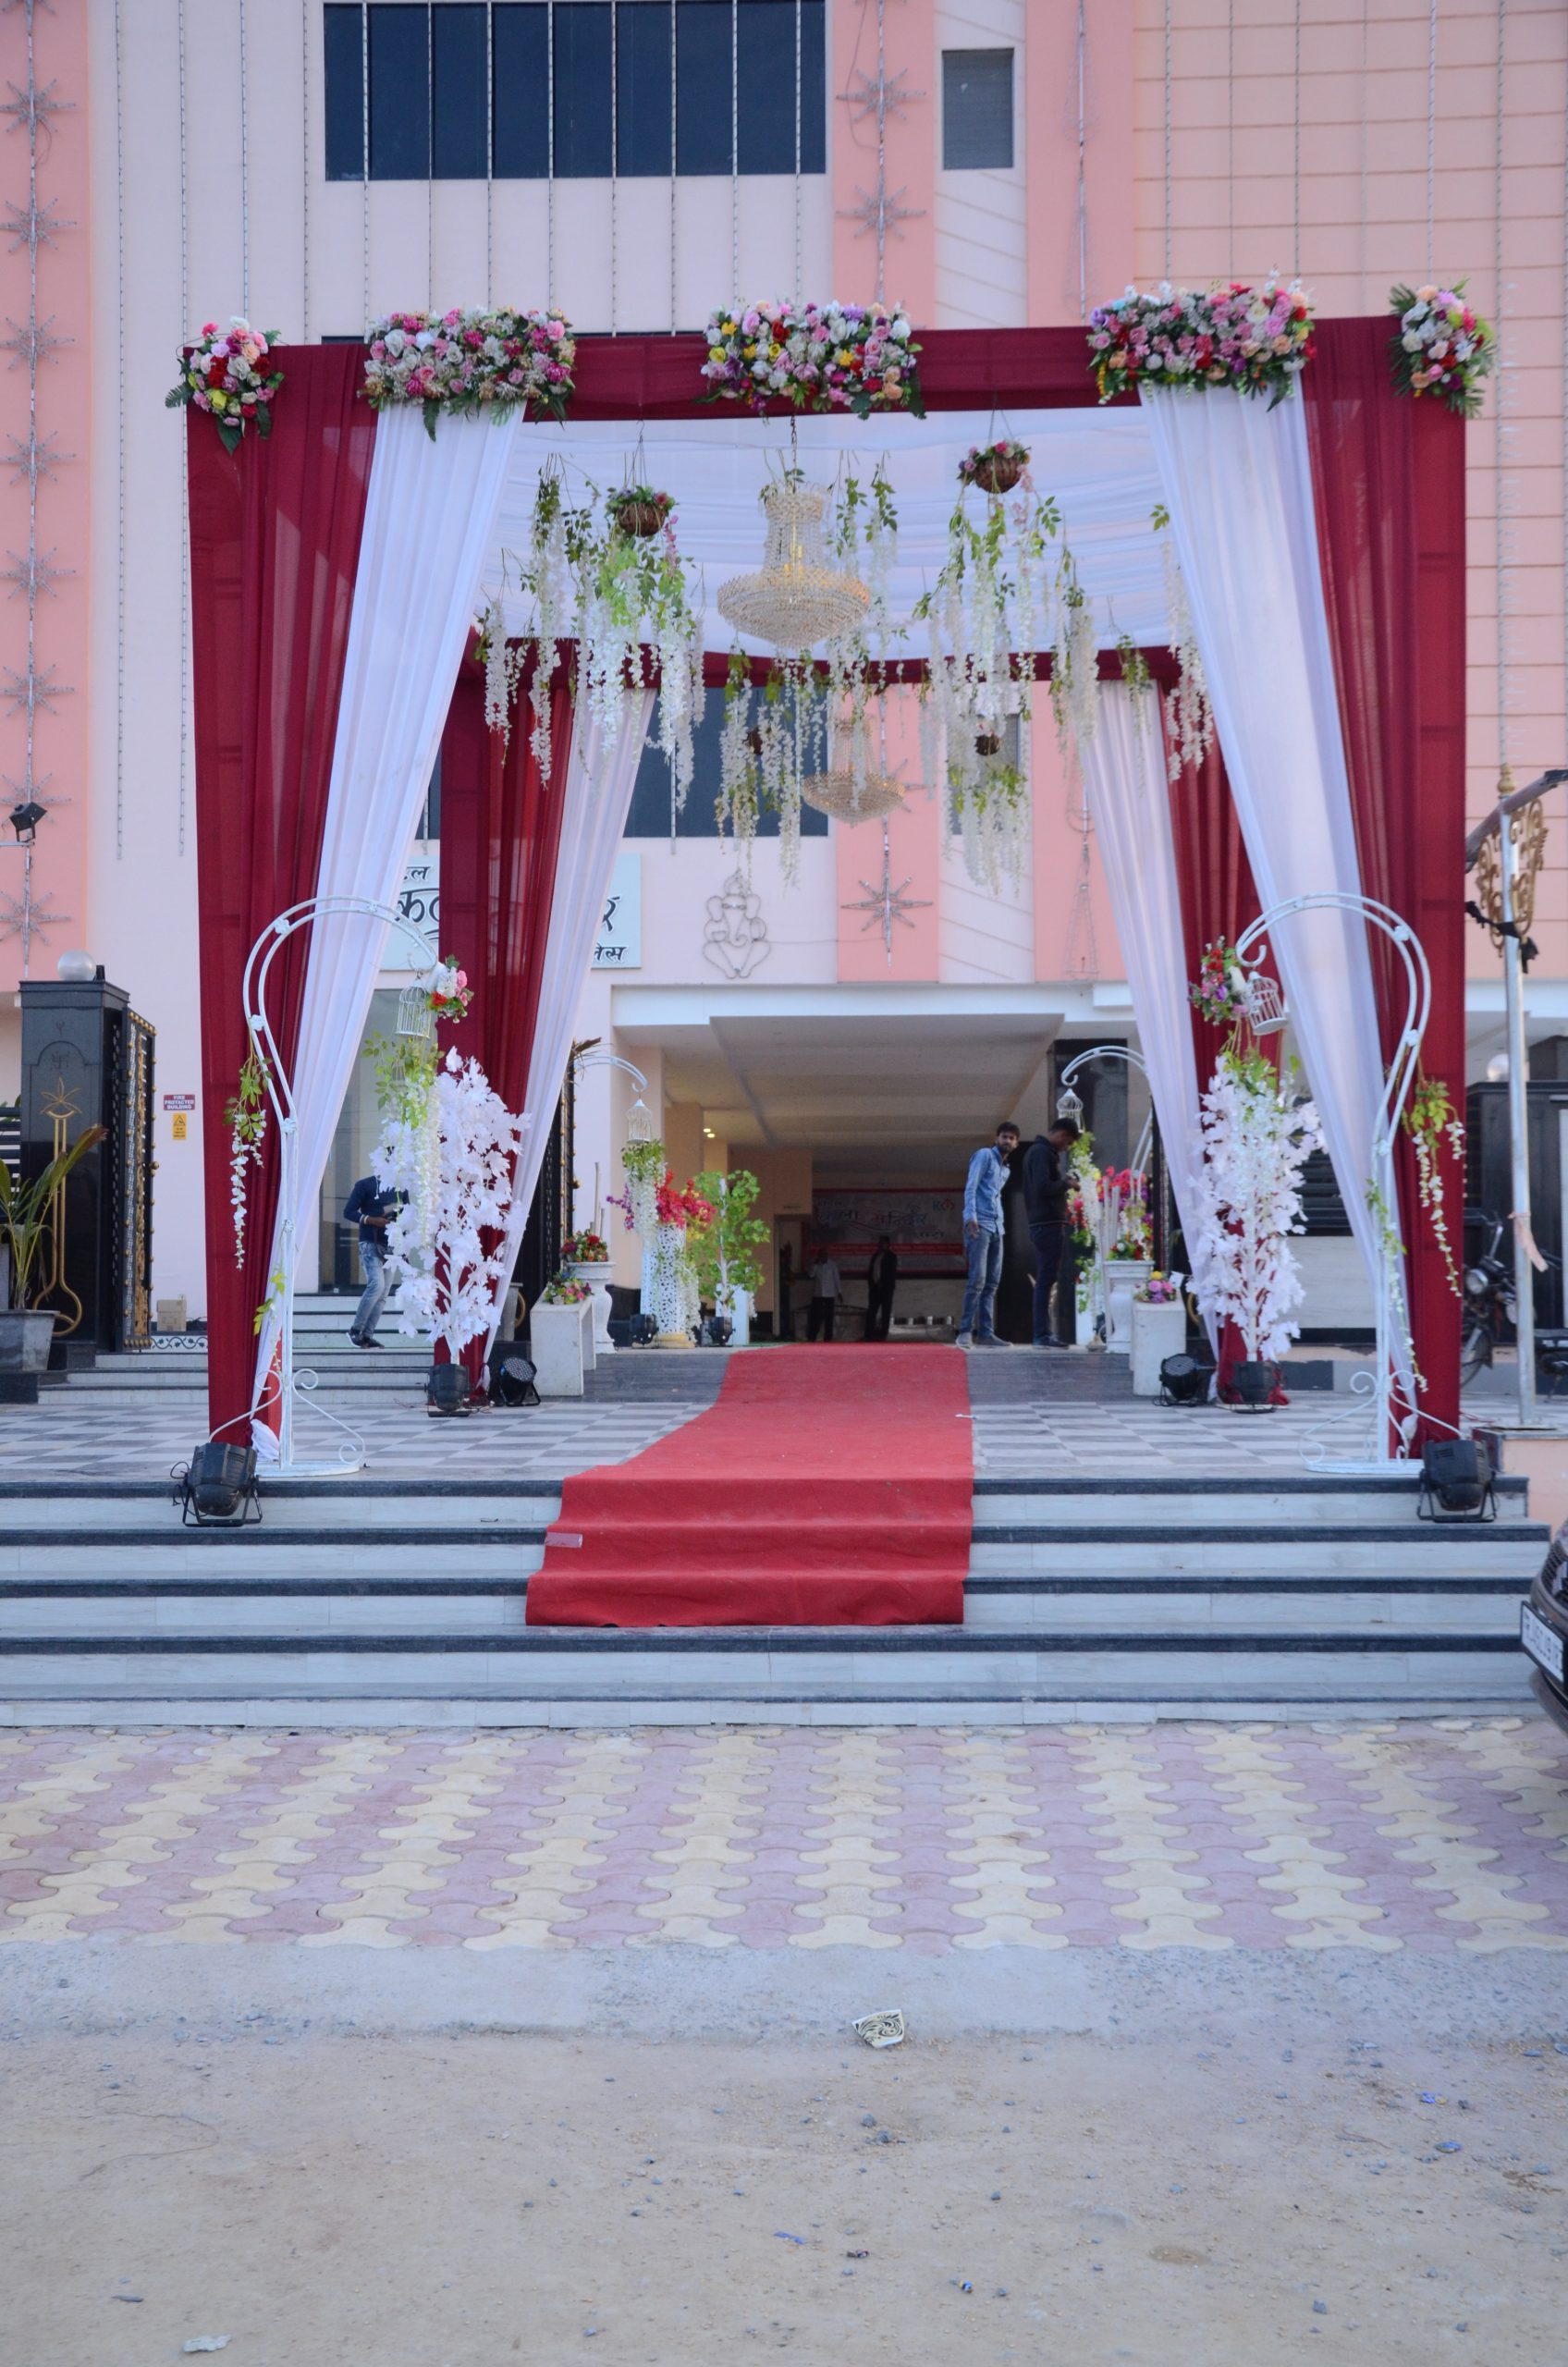 Entry to a wedding hall